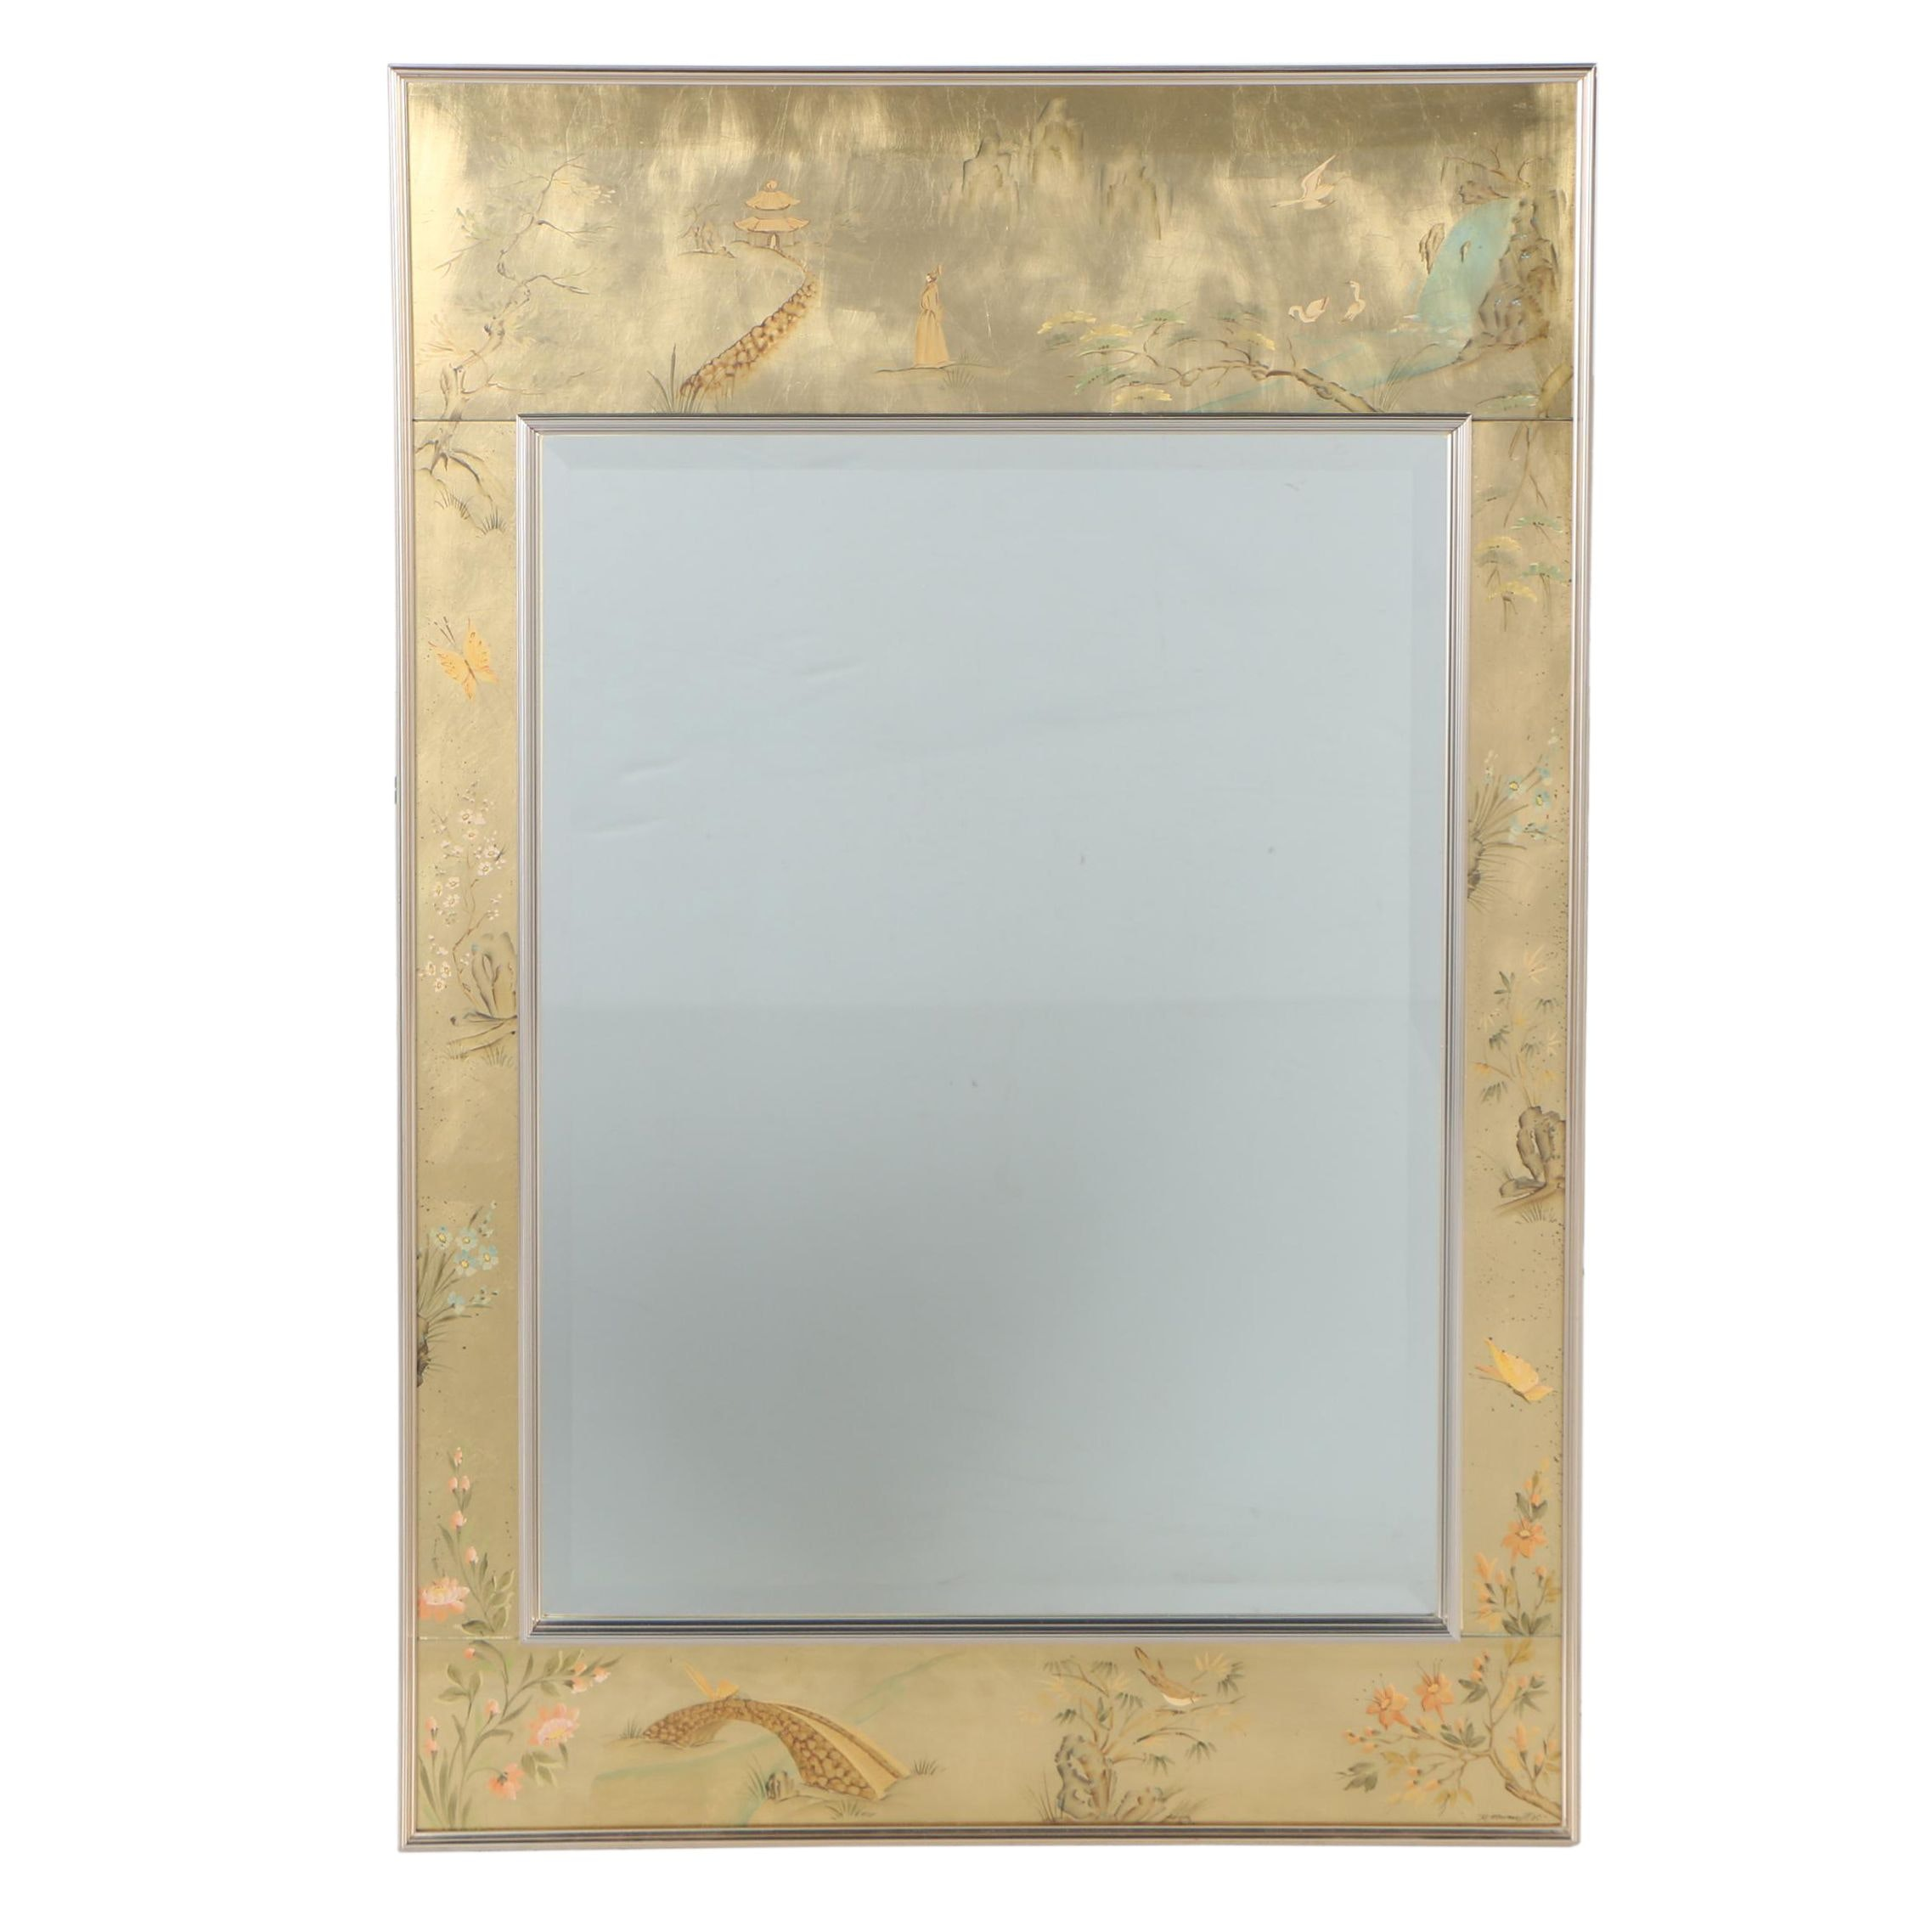 La Barge Chinoiserie Wall Mirror, 1980